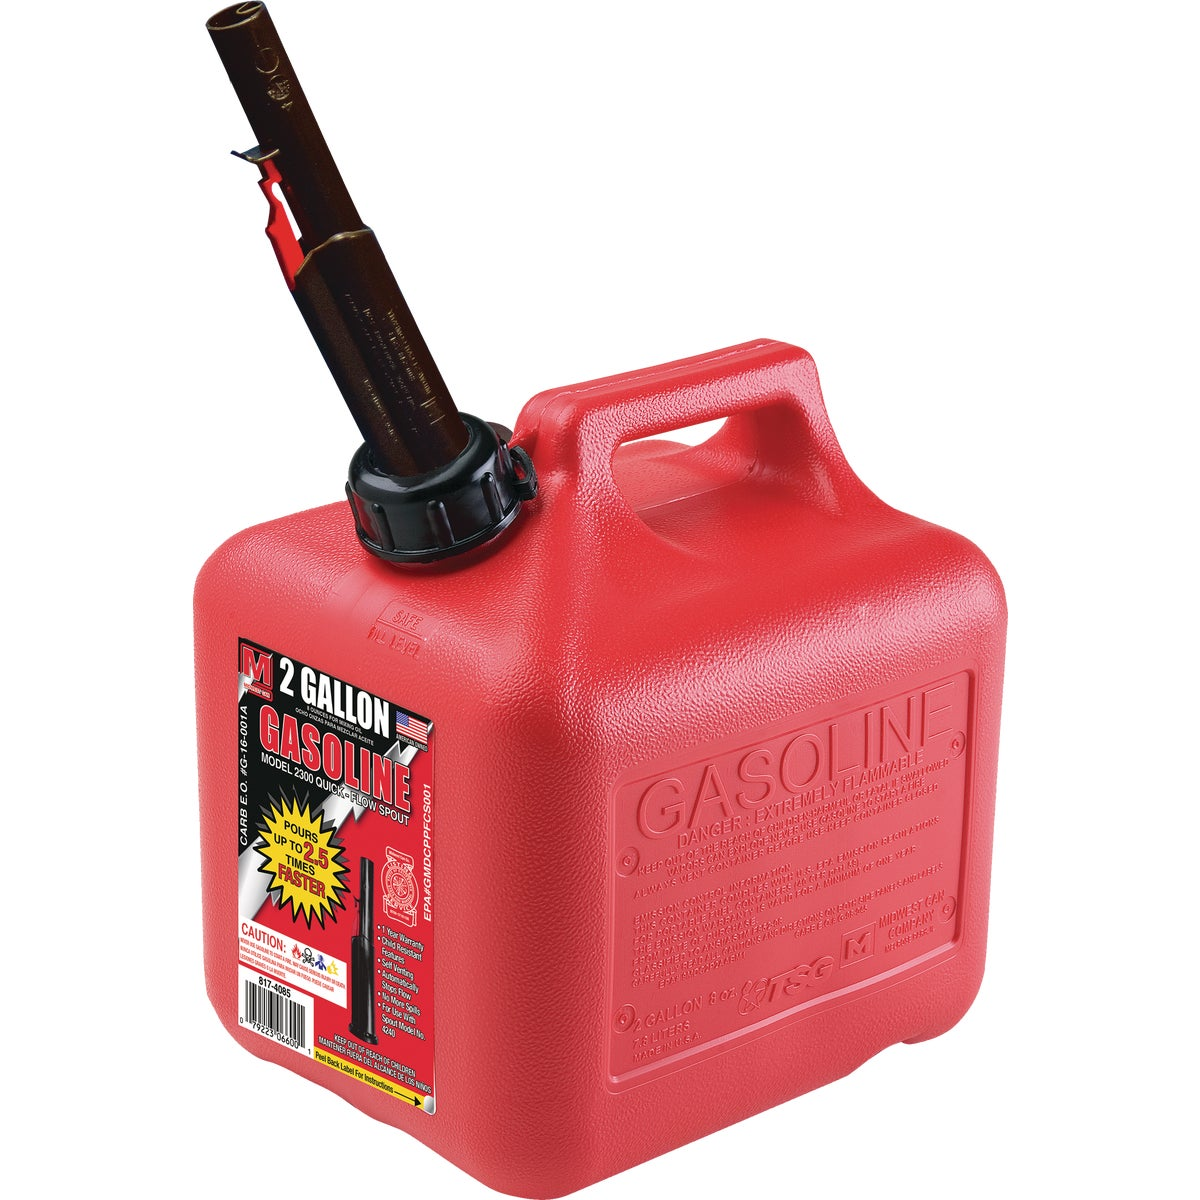 2+ GALLON GAS CAN - 85023 by Plastics Group